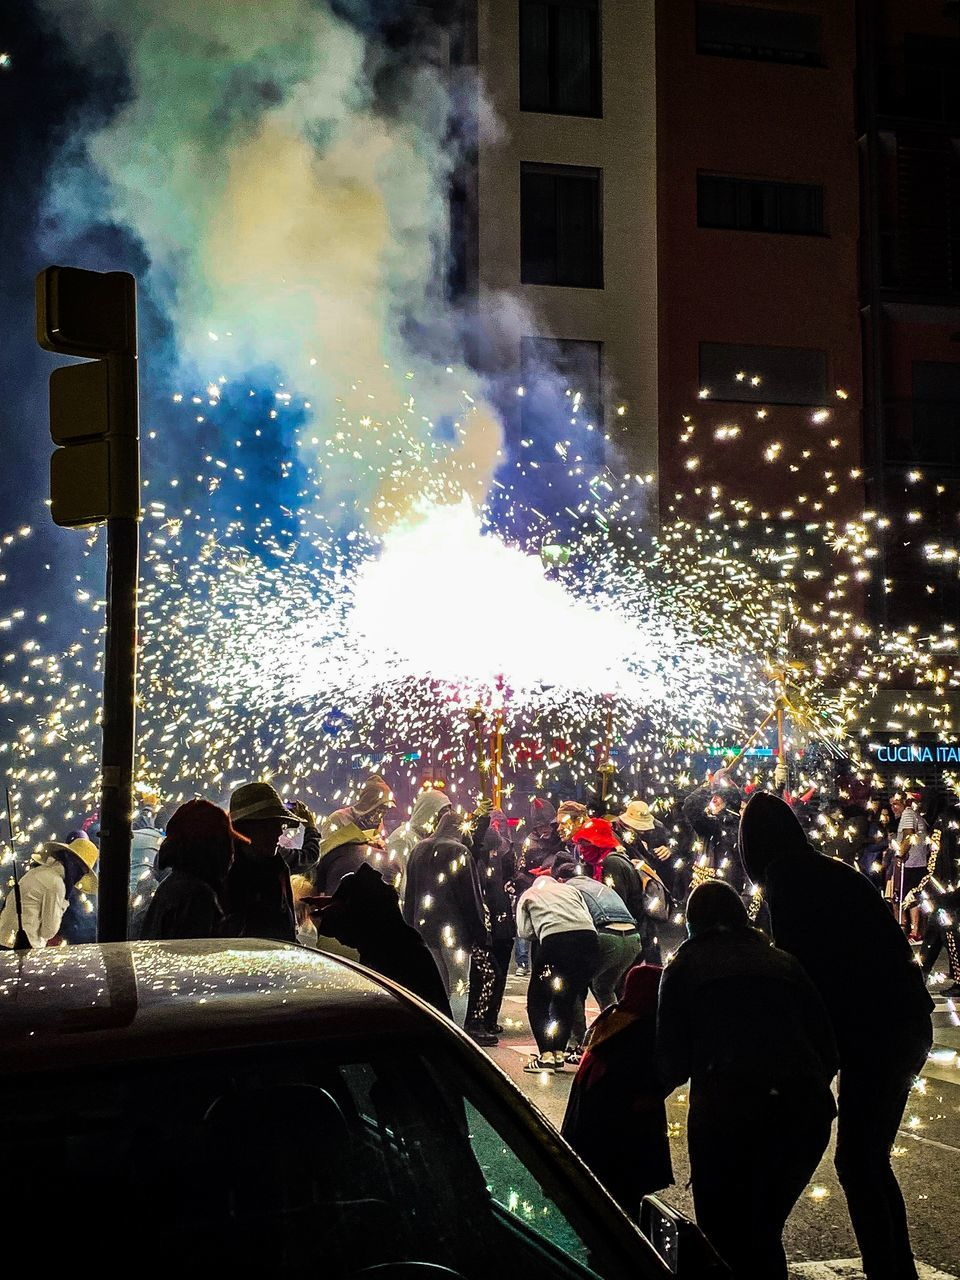 group of people, night, crowd, large group of people, real people, illuminated, smoke - physical structure, event, celebration, arts culture and entertainment, built structure, architecture, city, enjoyment, transportation, men, building exterior, outdoors, motion, light, firework display, firework